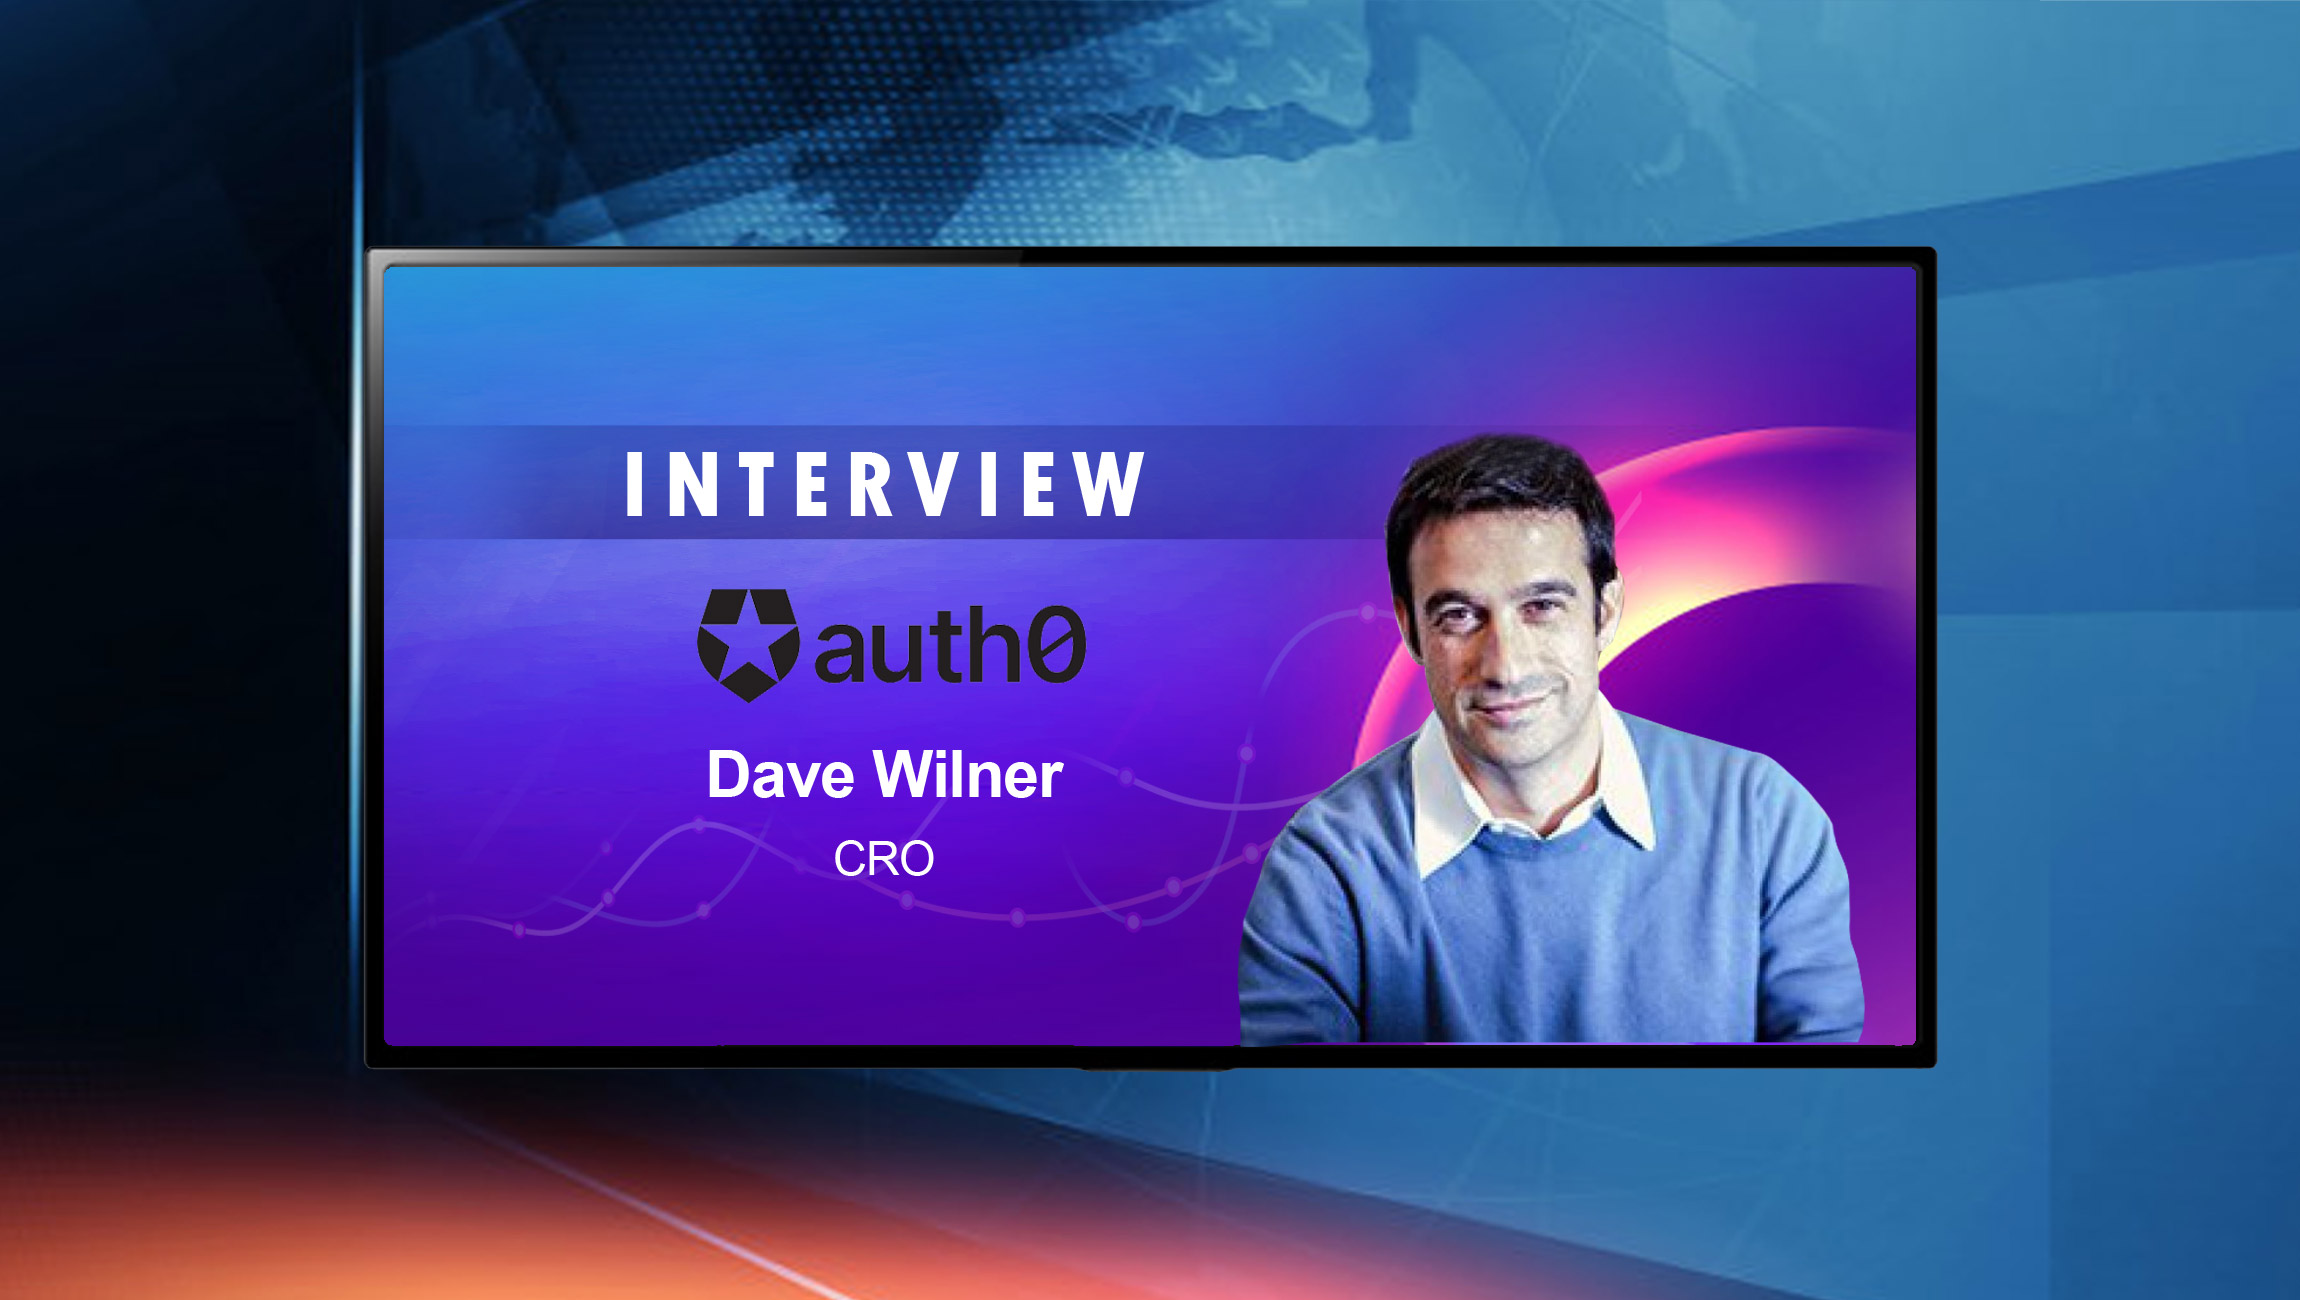 SalesTechStar Interview with Dave Wilner, Chief Revenue Officer at Auth0